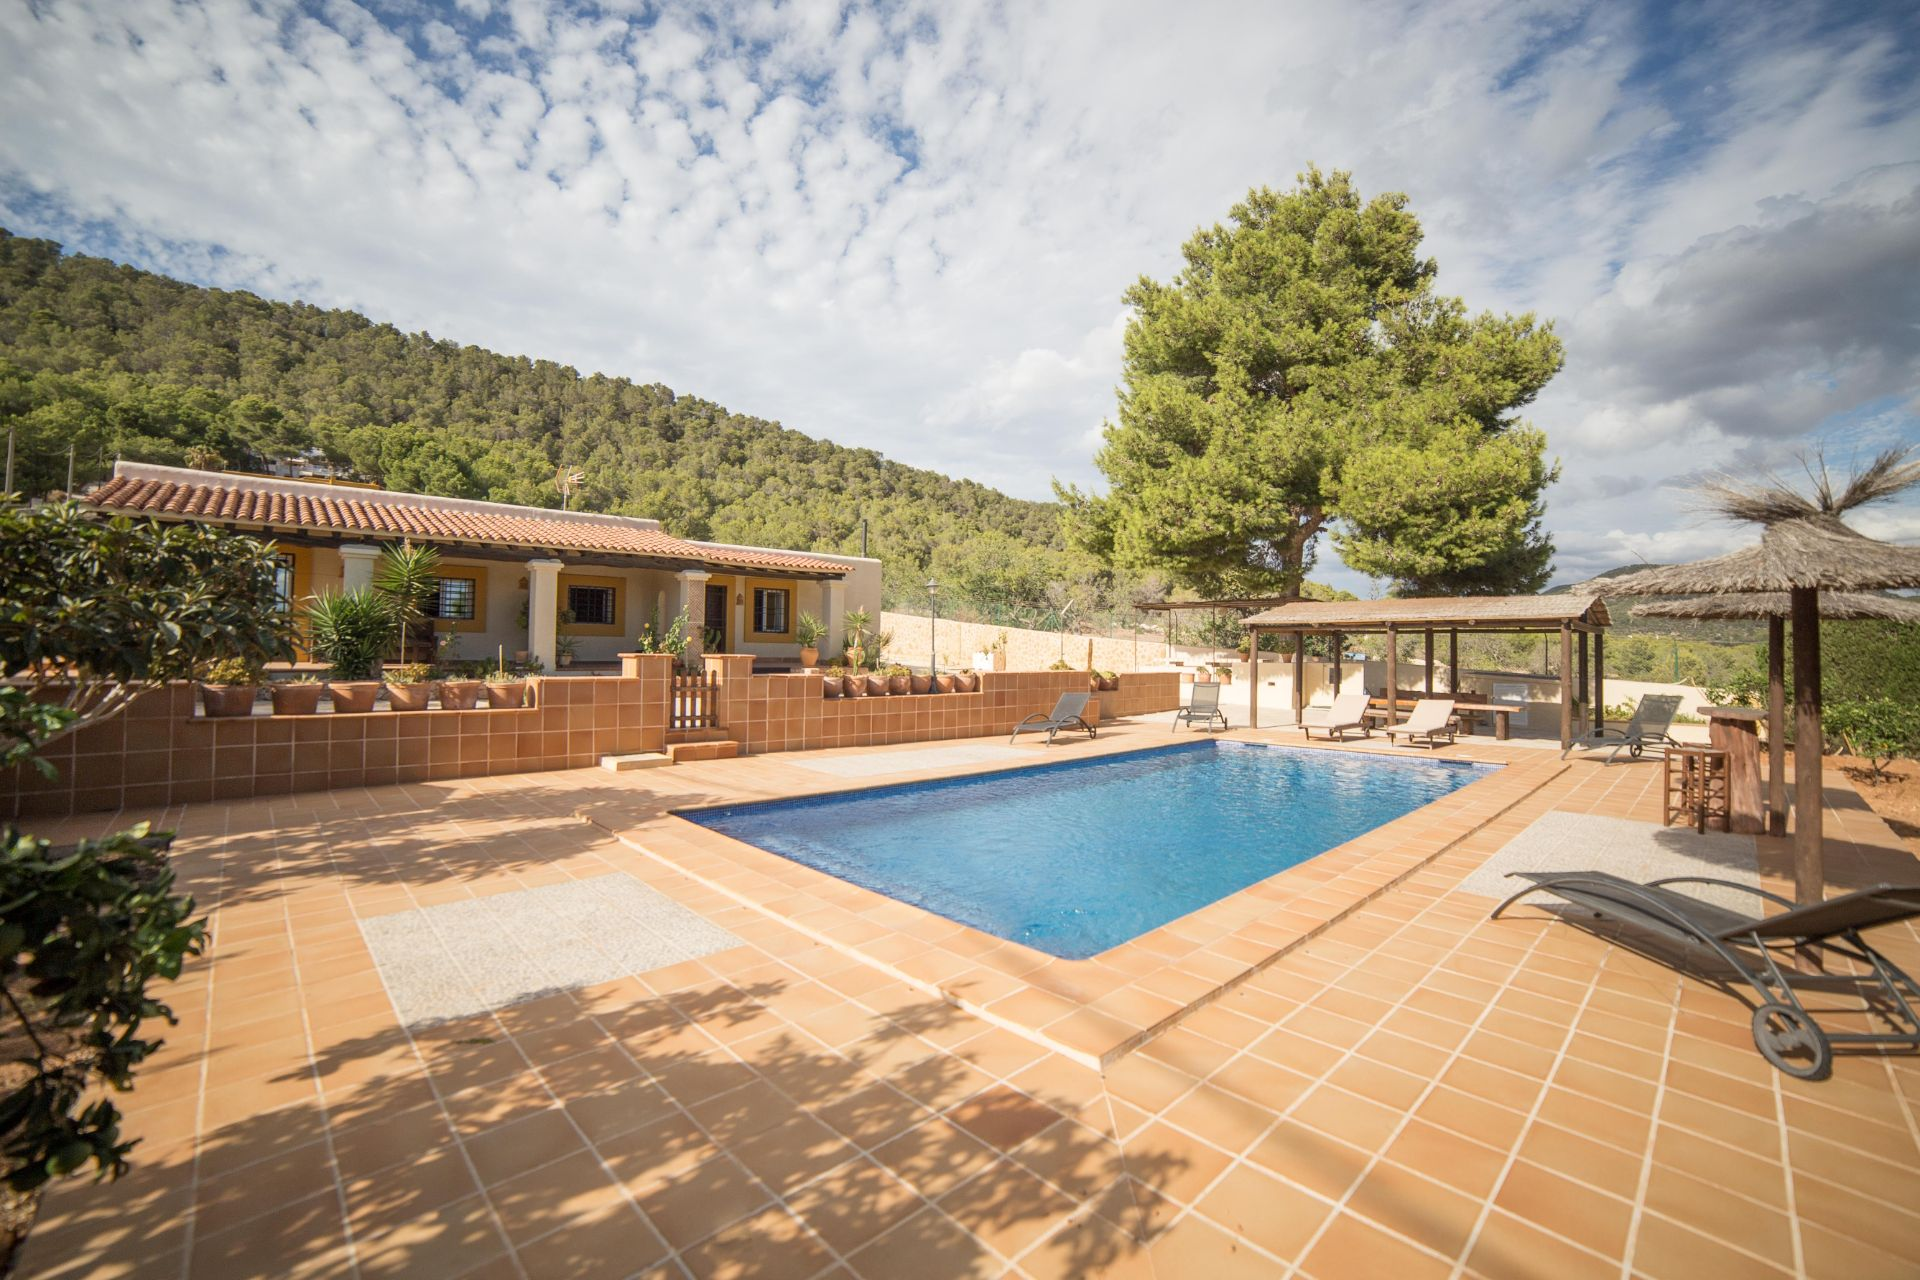 Villa in Sant Josep de sa Talaia, Es Cubells, for sale